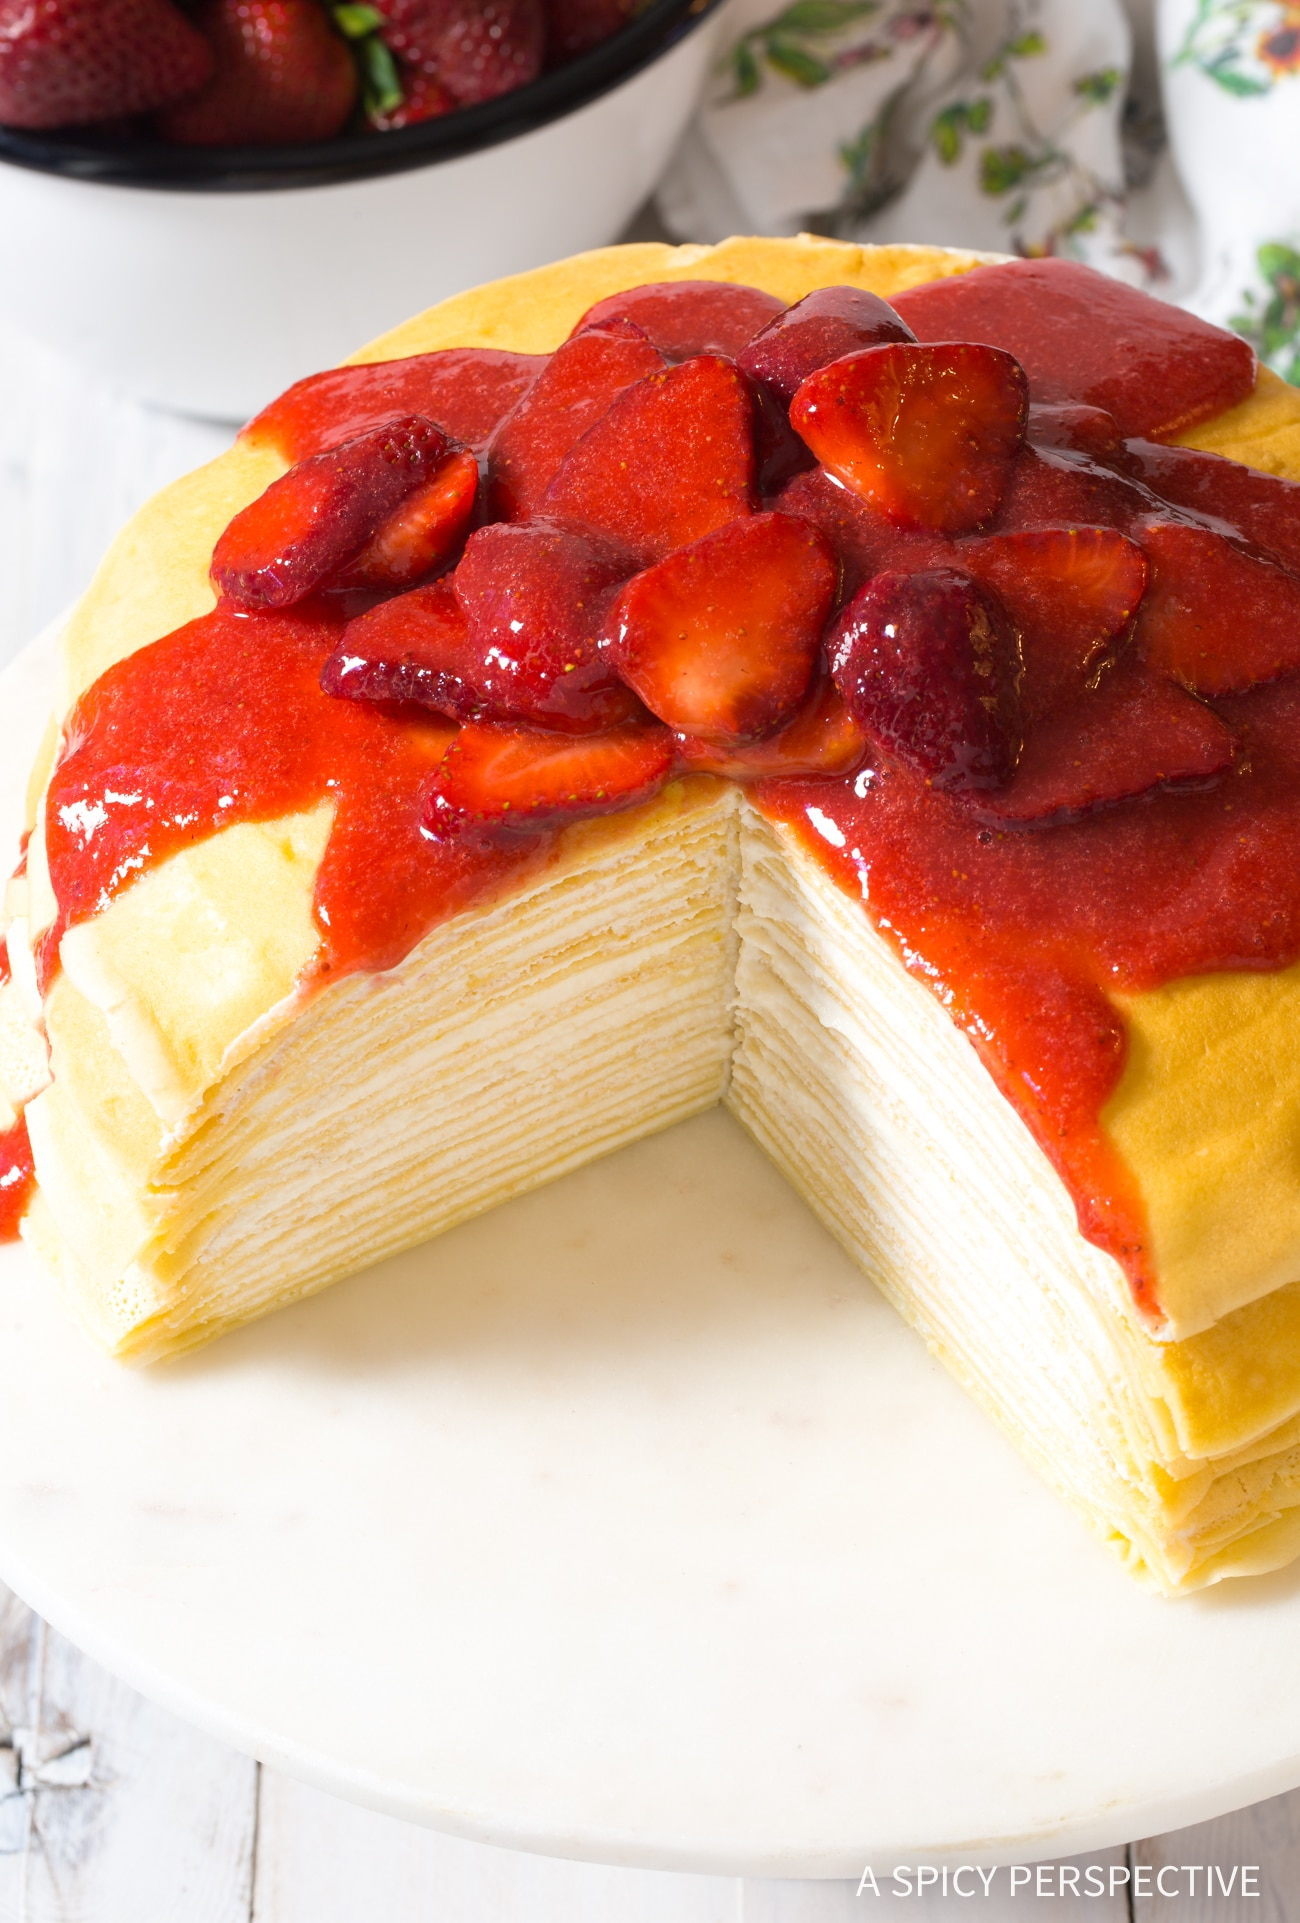 Fabulous Lemon Ricotta Crepe Cake with Strawberry Sauce Recipe (Mother's Day Brunch!)